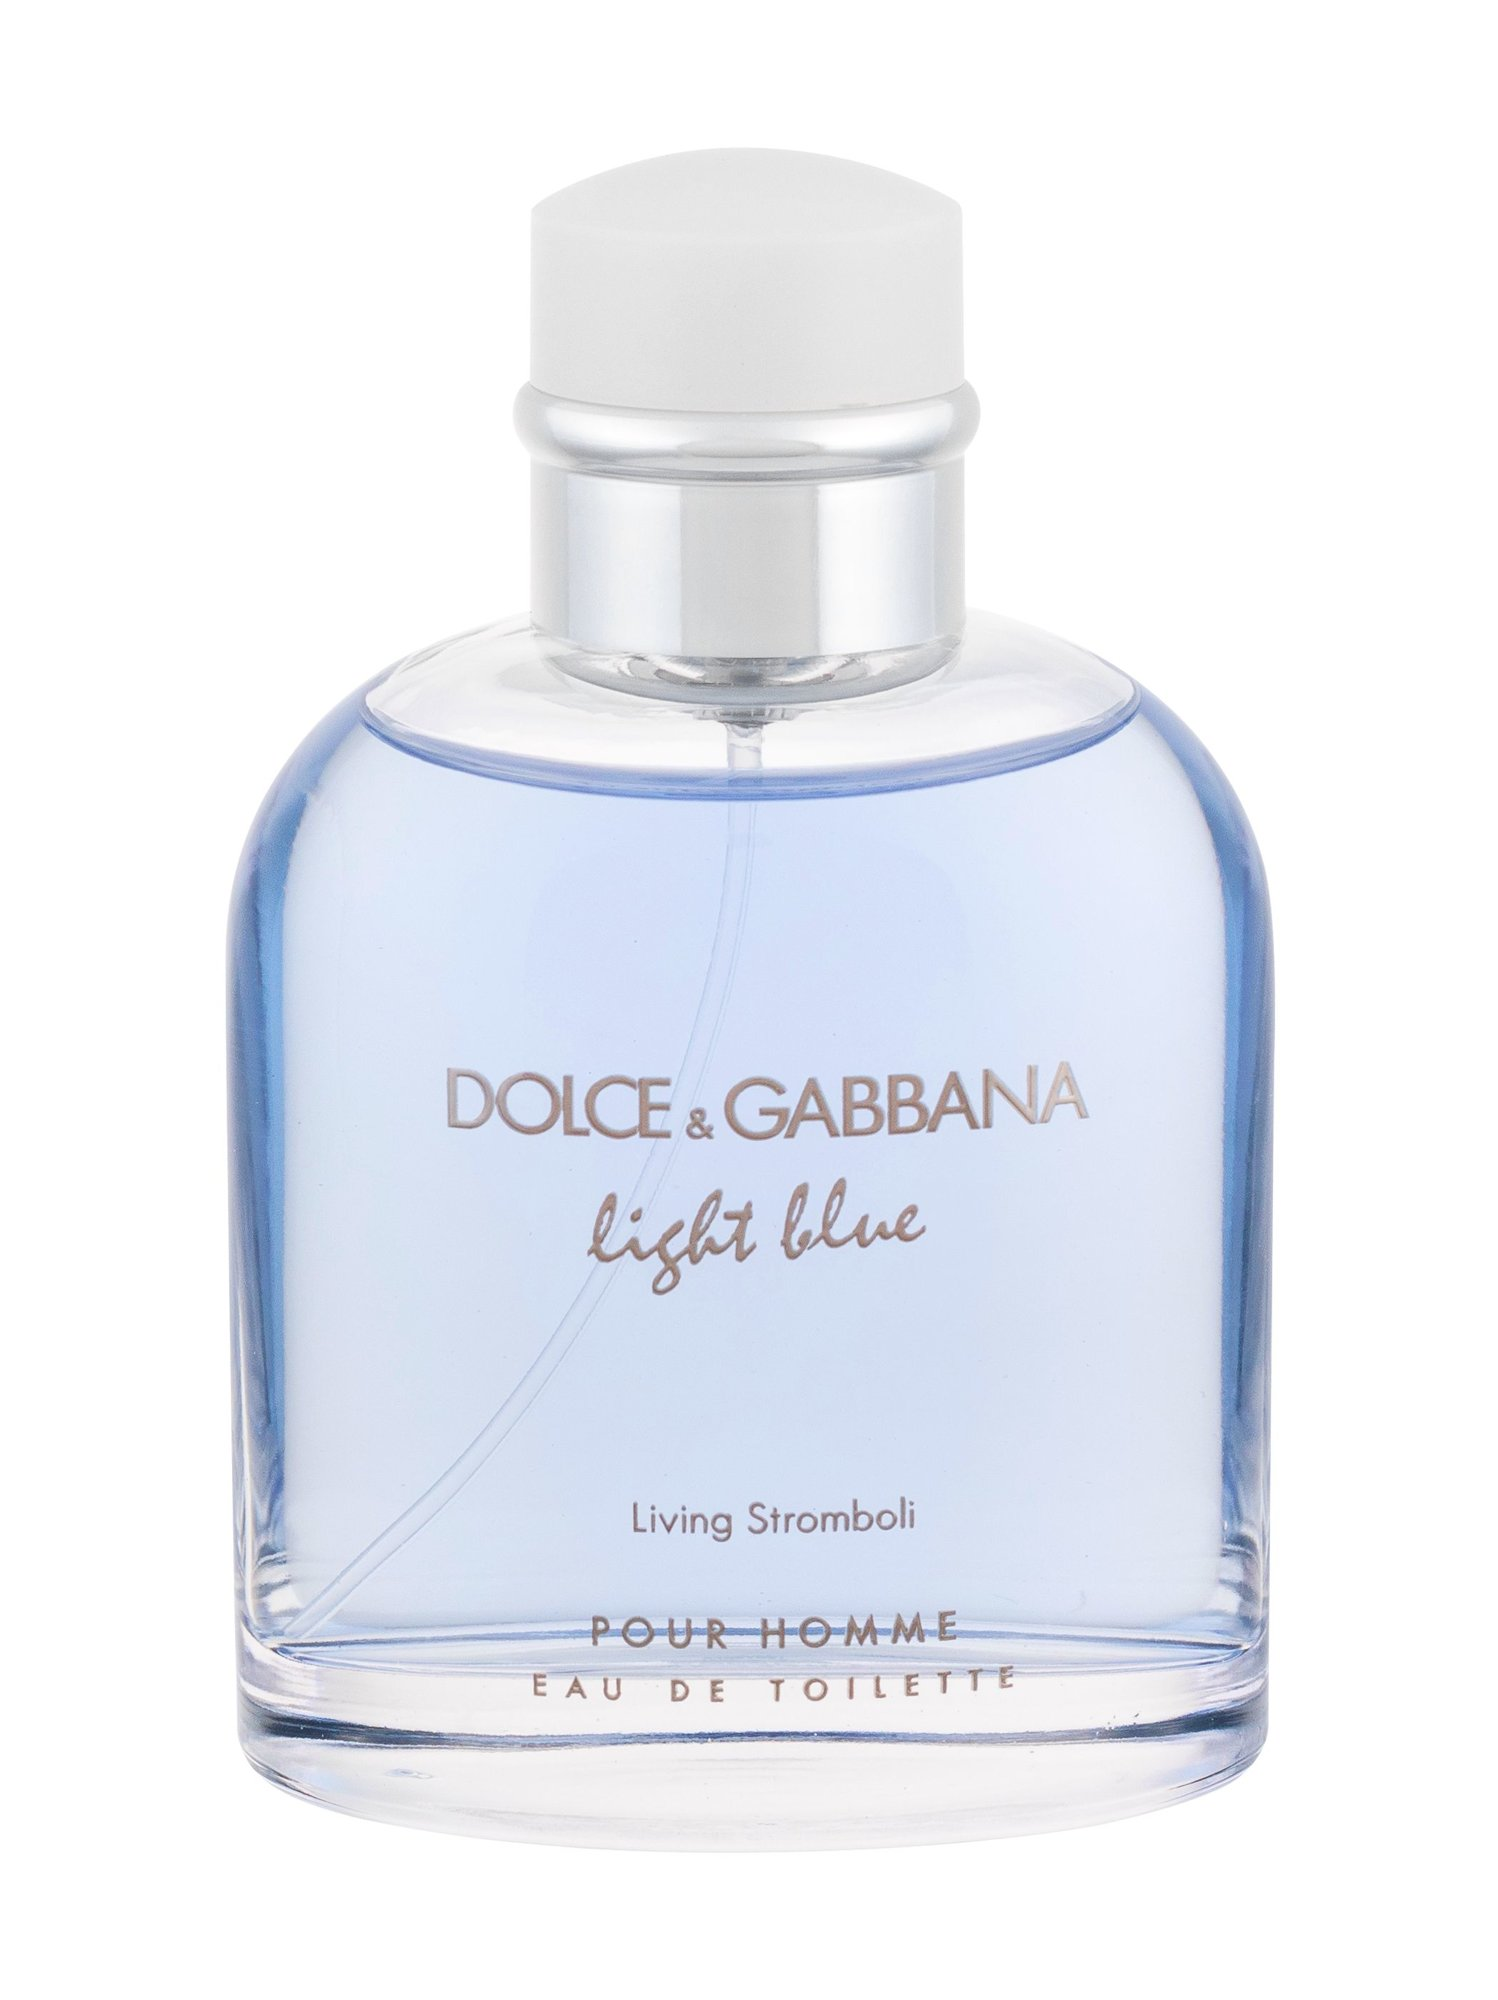 Dolce&Gabbana Light Blue Living Stromboli Pour Homme Eau de Toilette 125ml